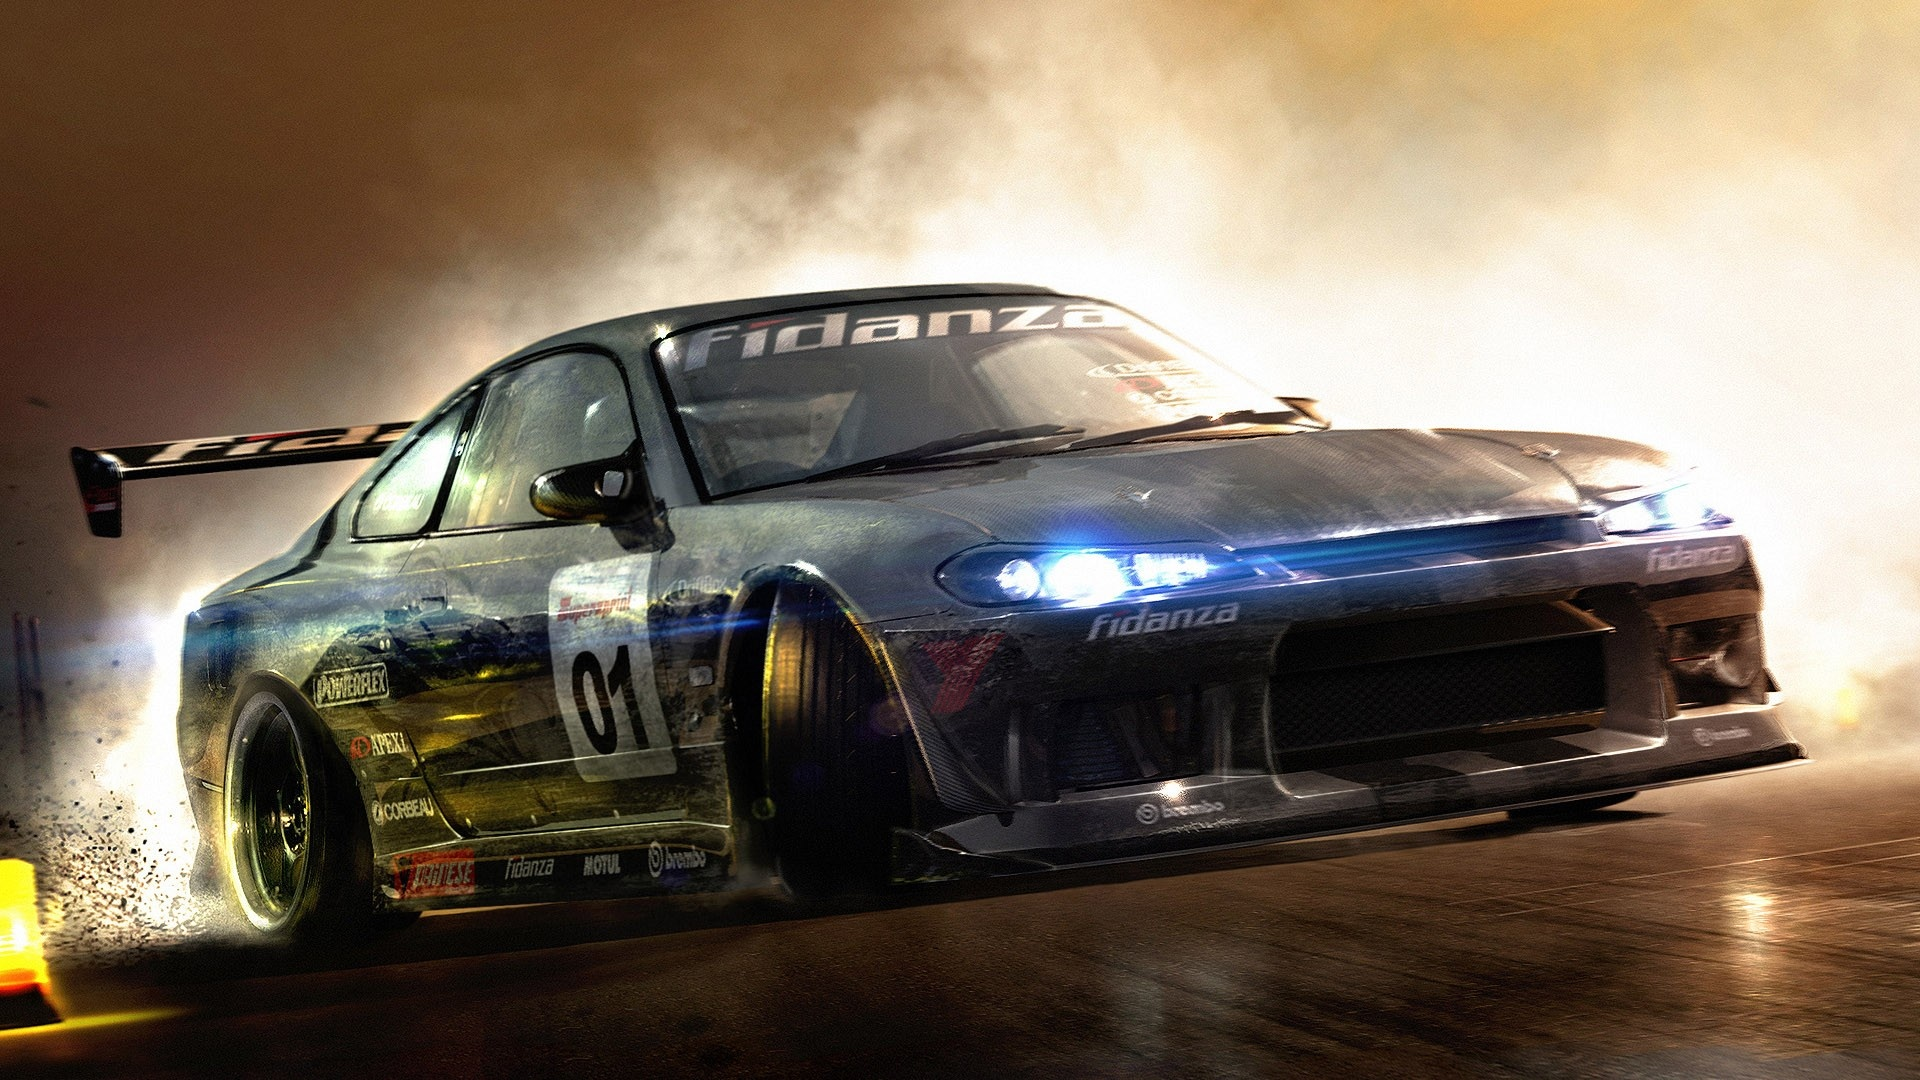 Download Drift Racing Car Wallpaper Wallpapers 1920x1080